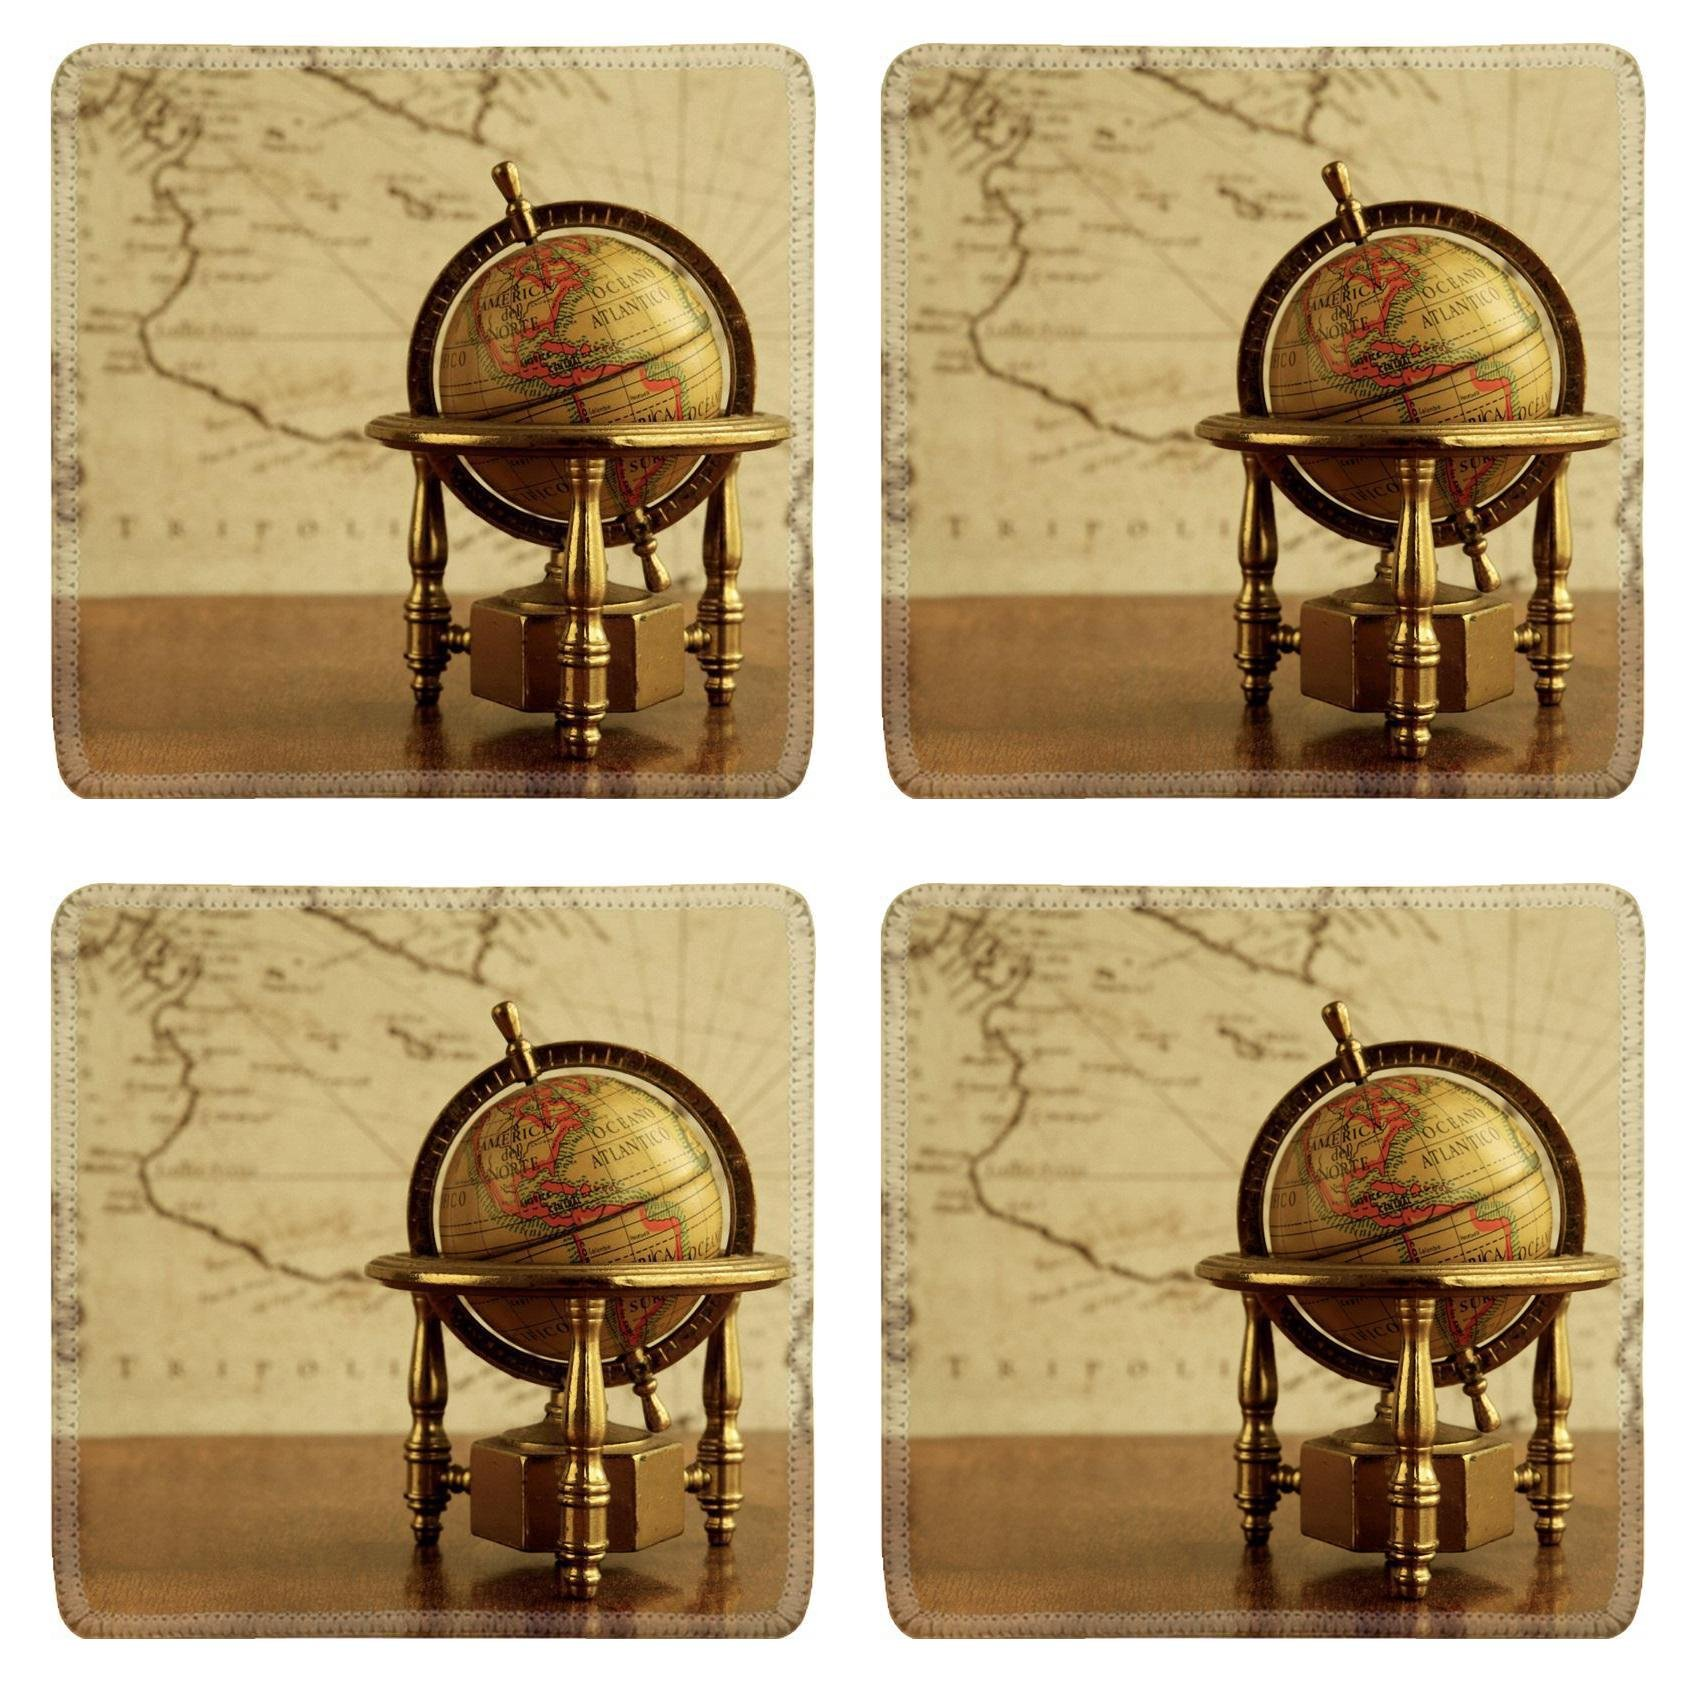 MSD Square Coasters Non-Slip Natural Rubber Desk Coasters design 14990912 Globe against map on a wall